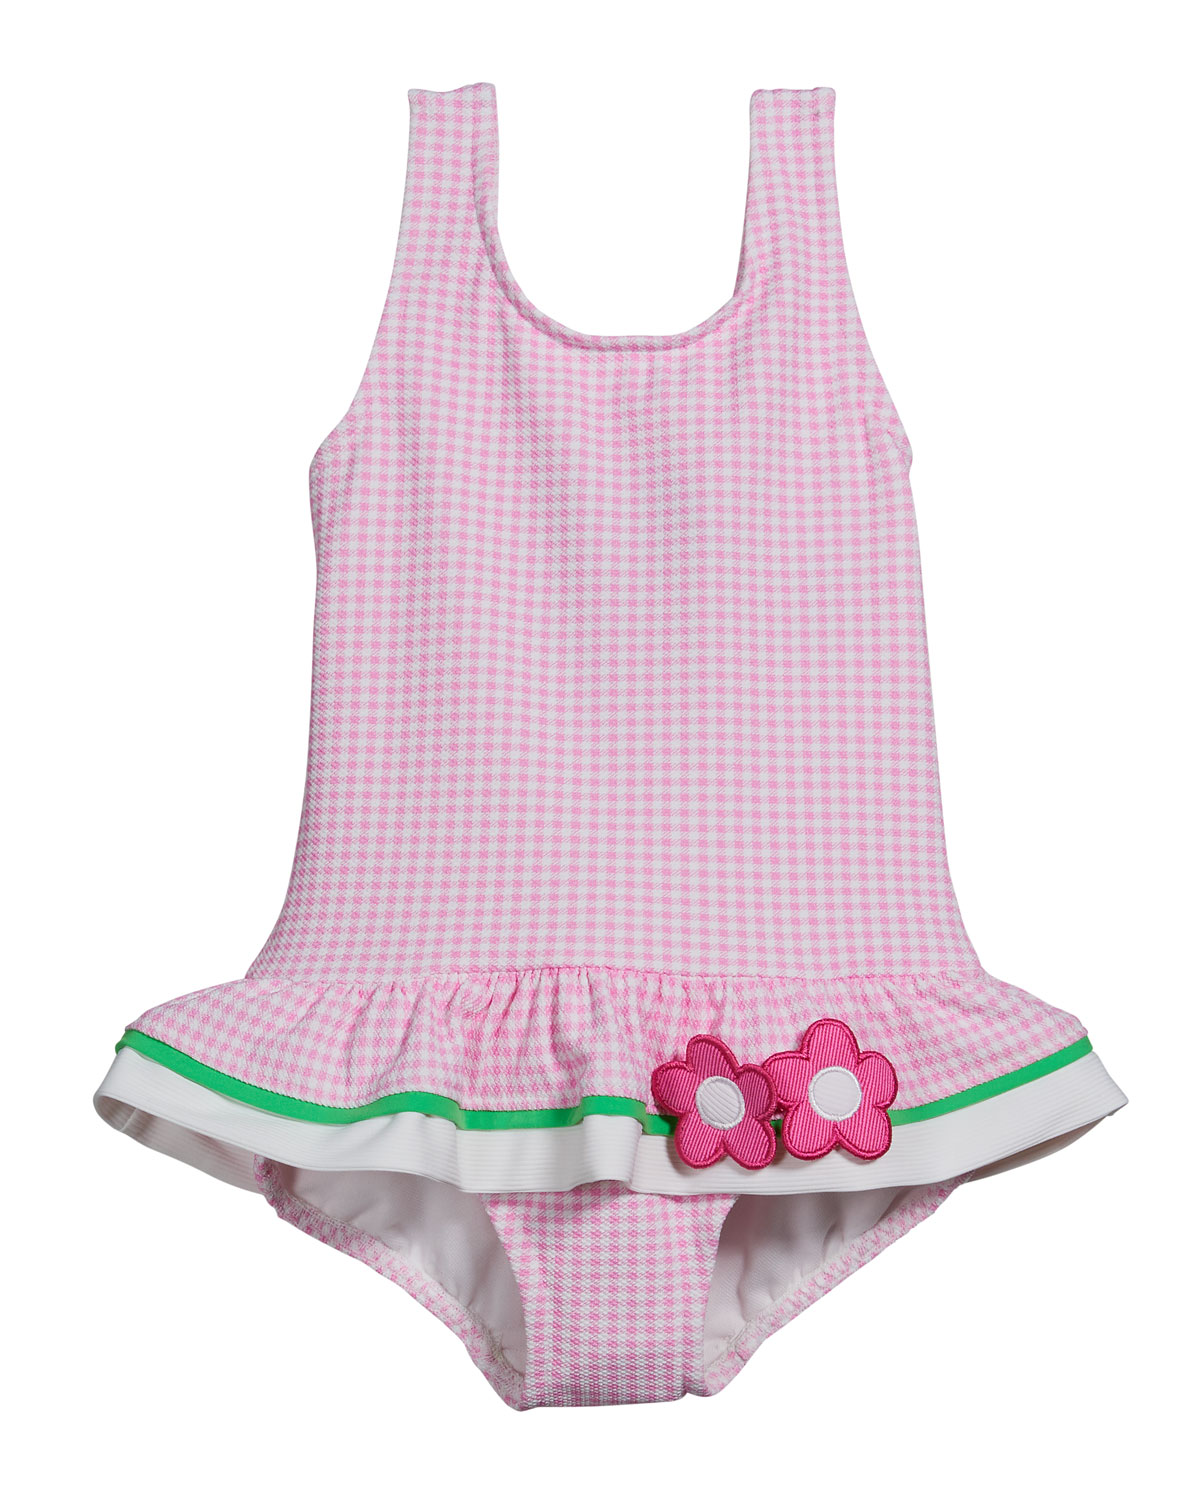 Girl's Gingham Floral One-Piece Swimsuit, Size 2-6X